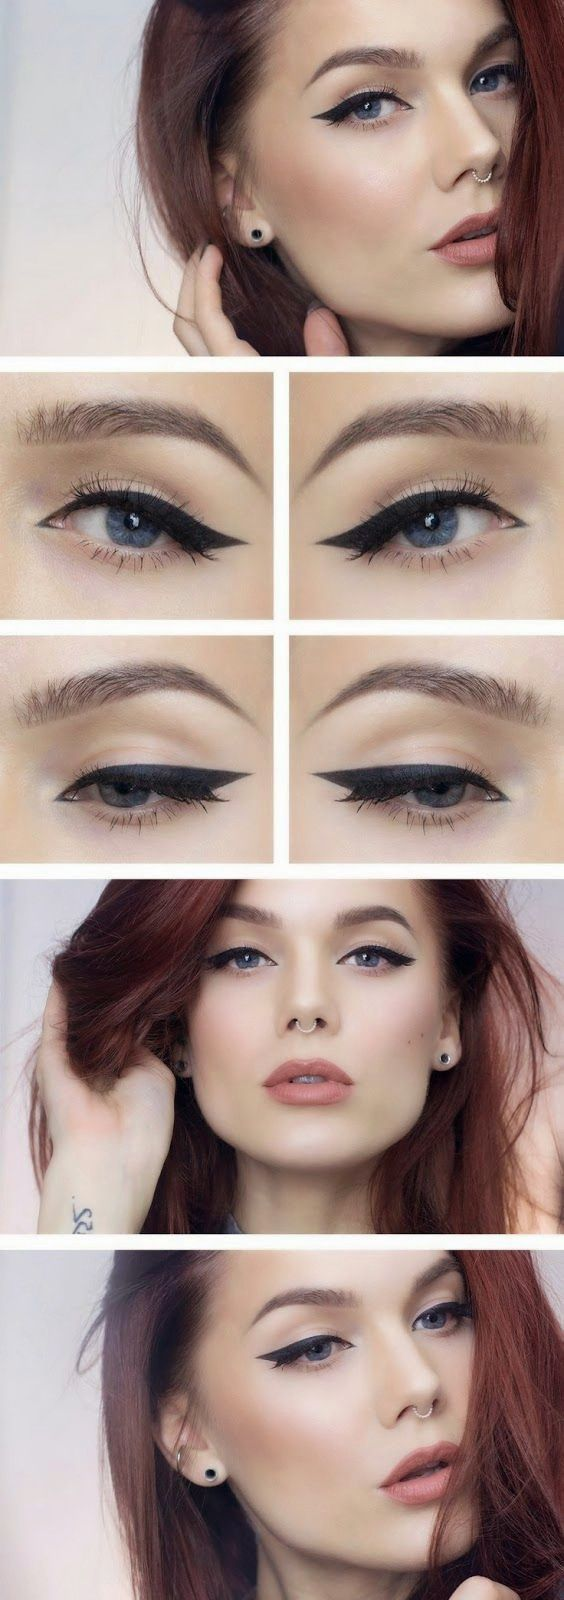 8 Beauty Tricks for Taking Your Best Selfie - Page 2 of 4 - Trend To Wear